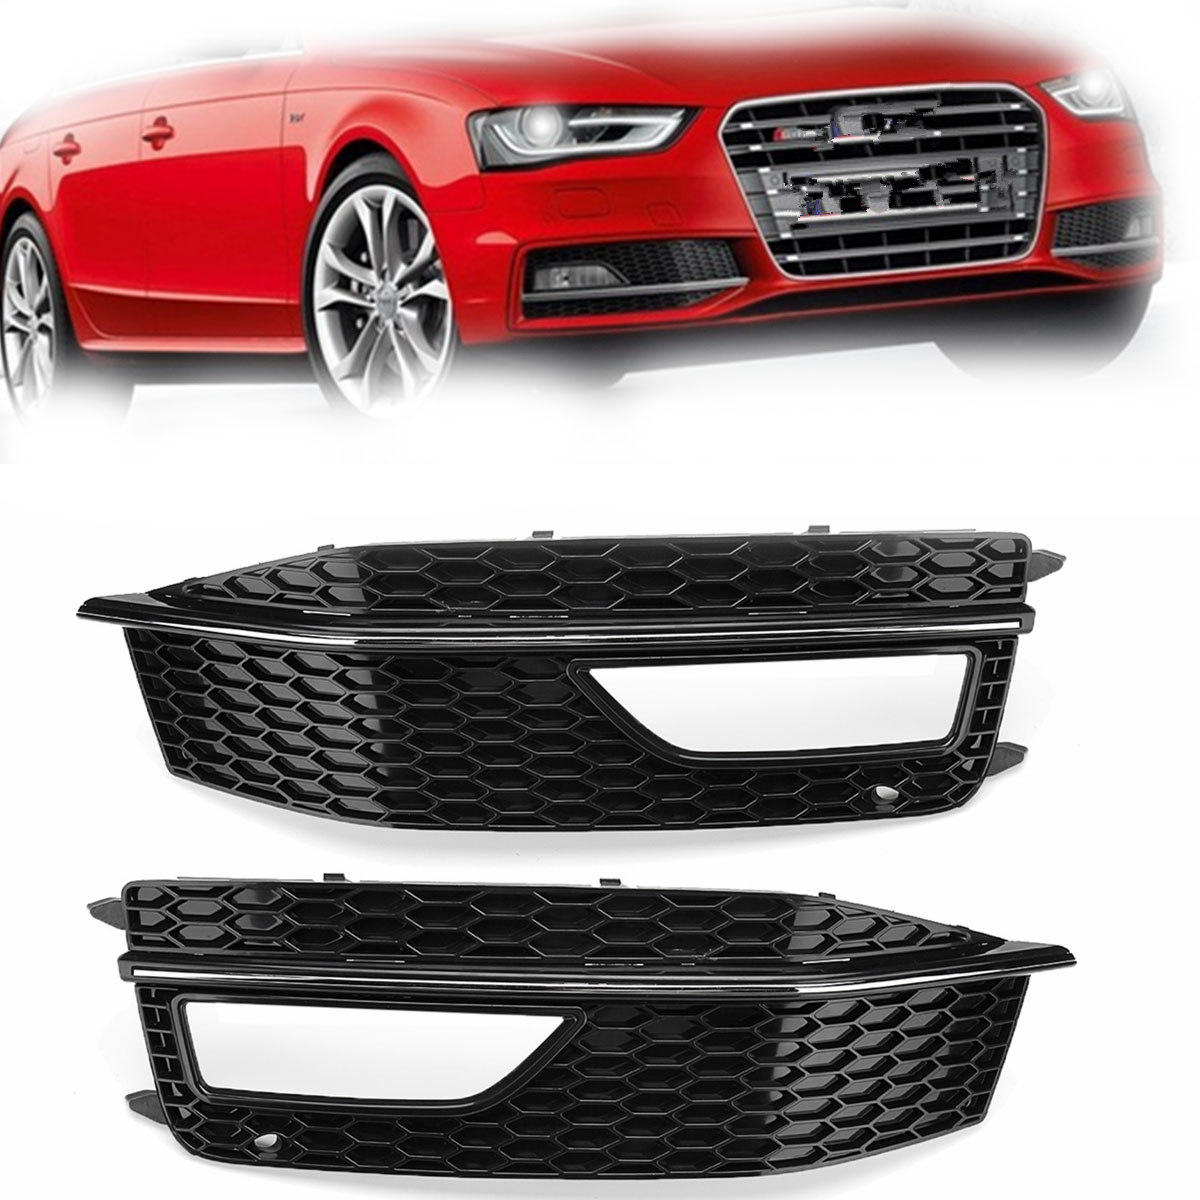 Left/Right Black Car Side Front Bumper Fog Light Grill Grills Grille Cover Replacements  For Audi A4 B8 S4 S-line 2012-2015 grille